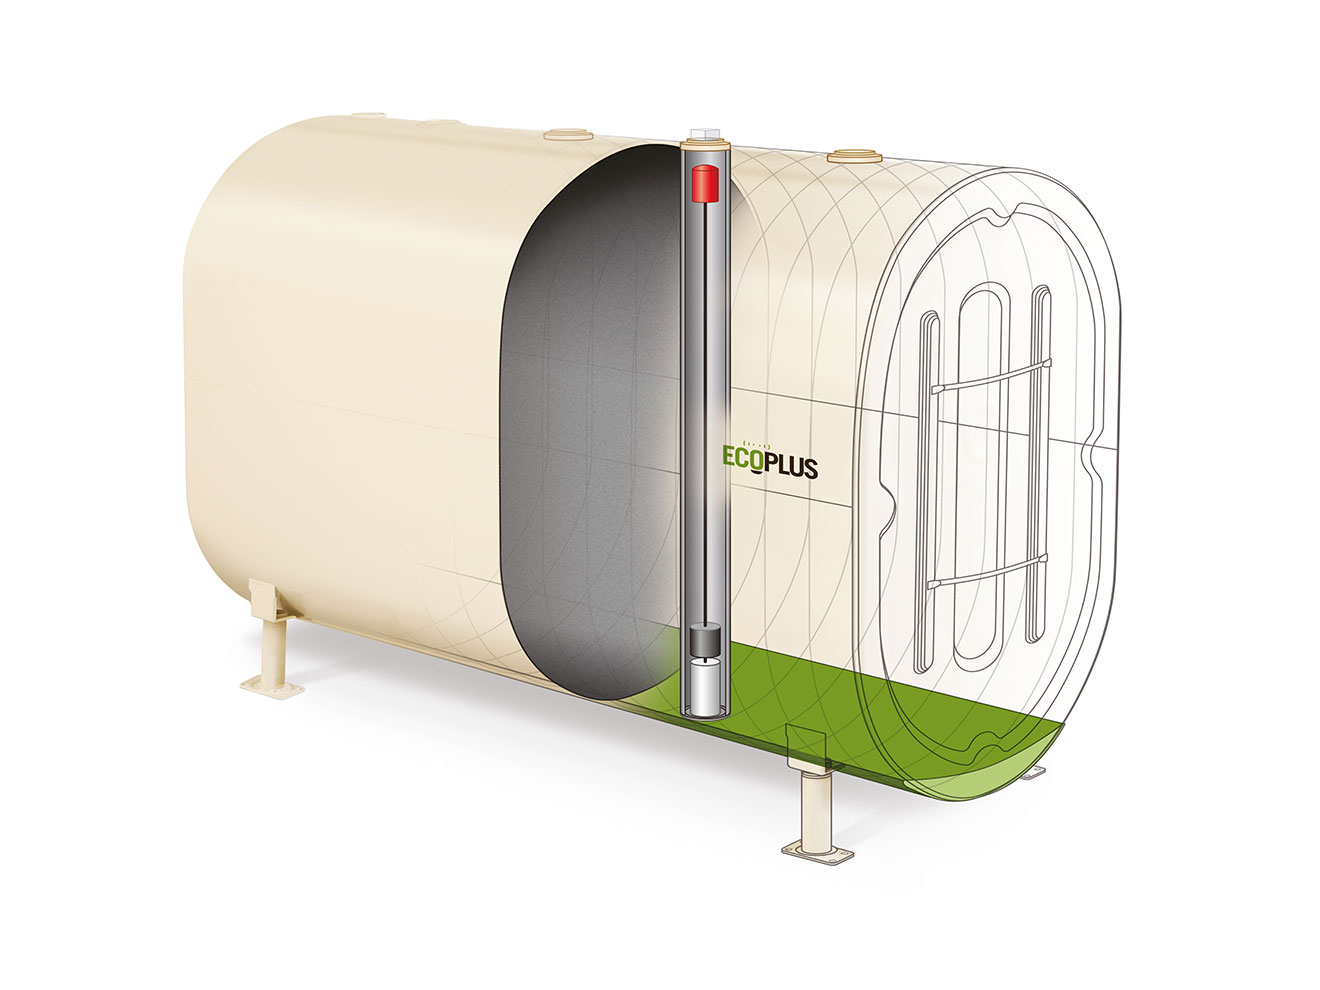 Oil Amp Electric Heating Systems Amp Storage Tanks Granby